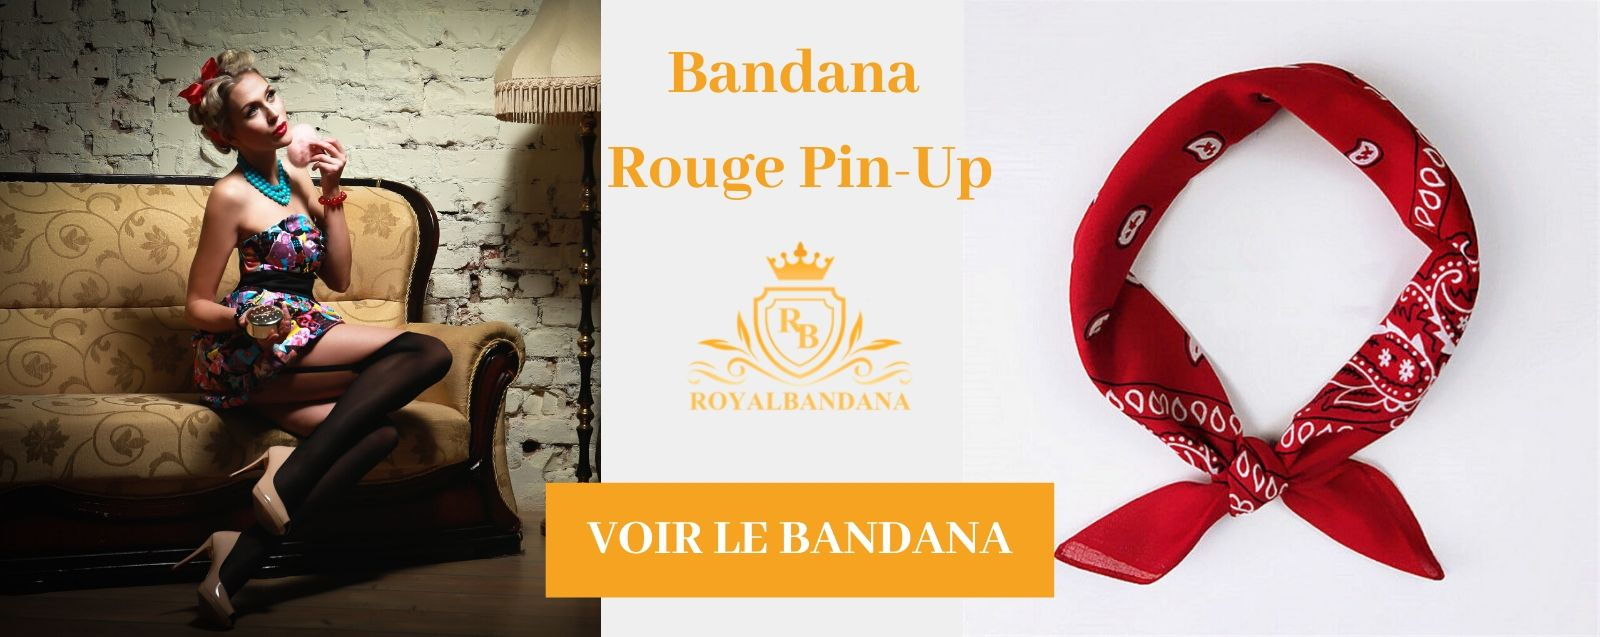 voir bandana rouge pin-up royalbandana